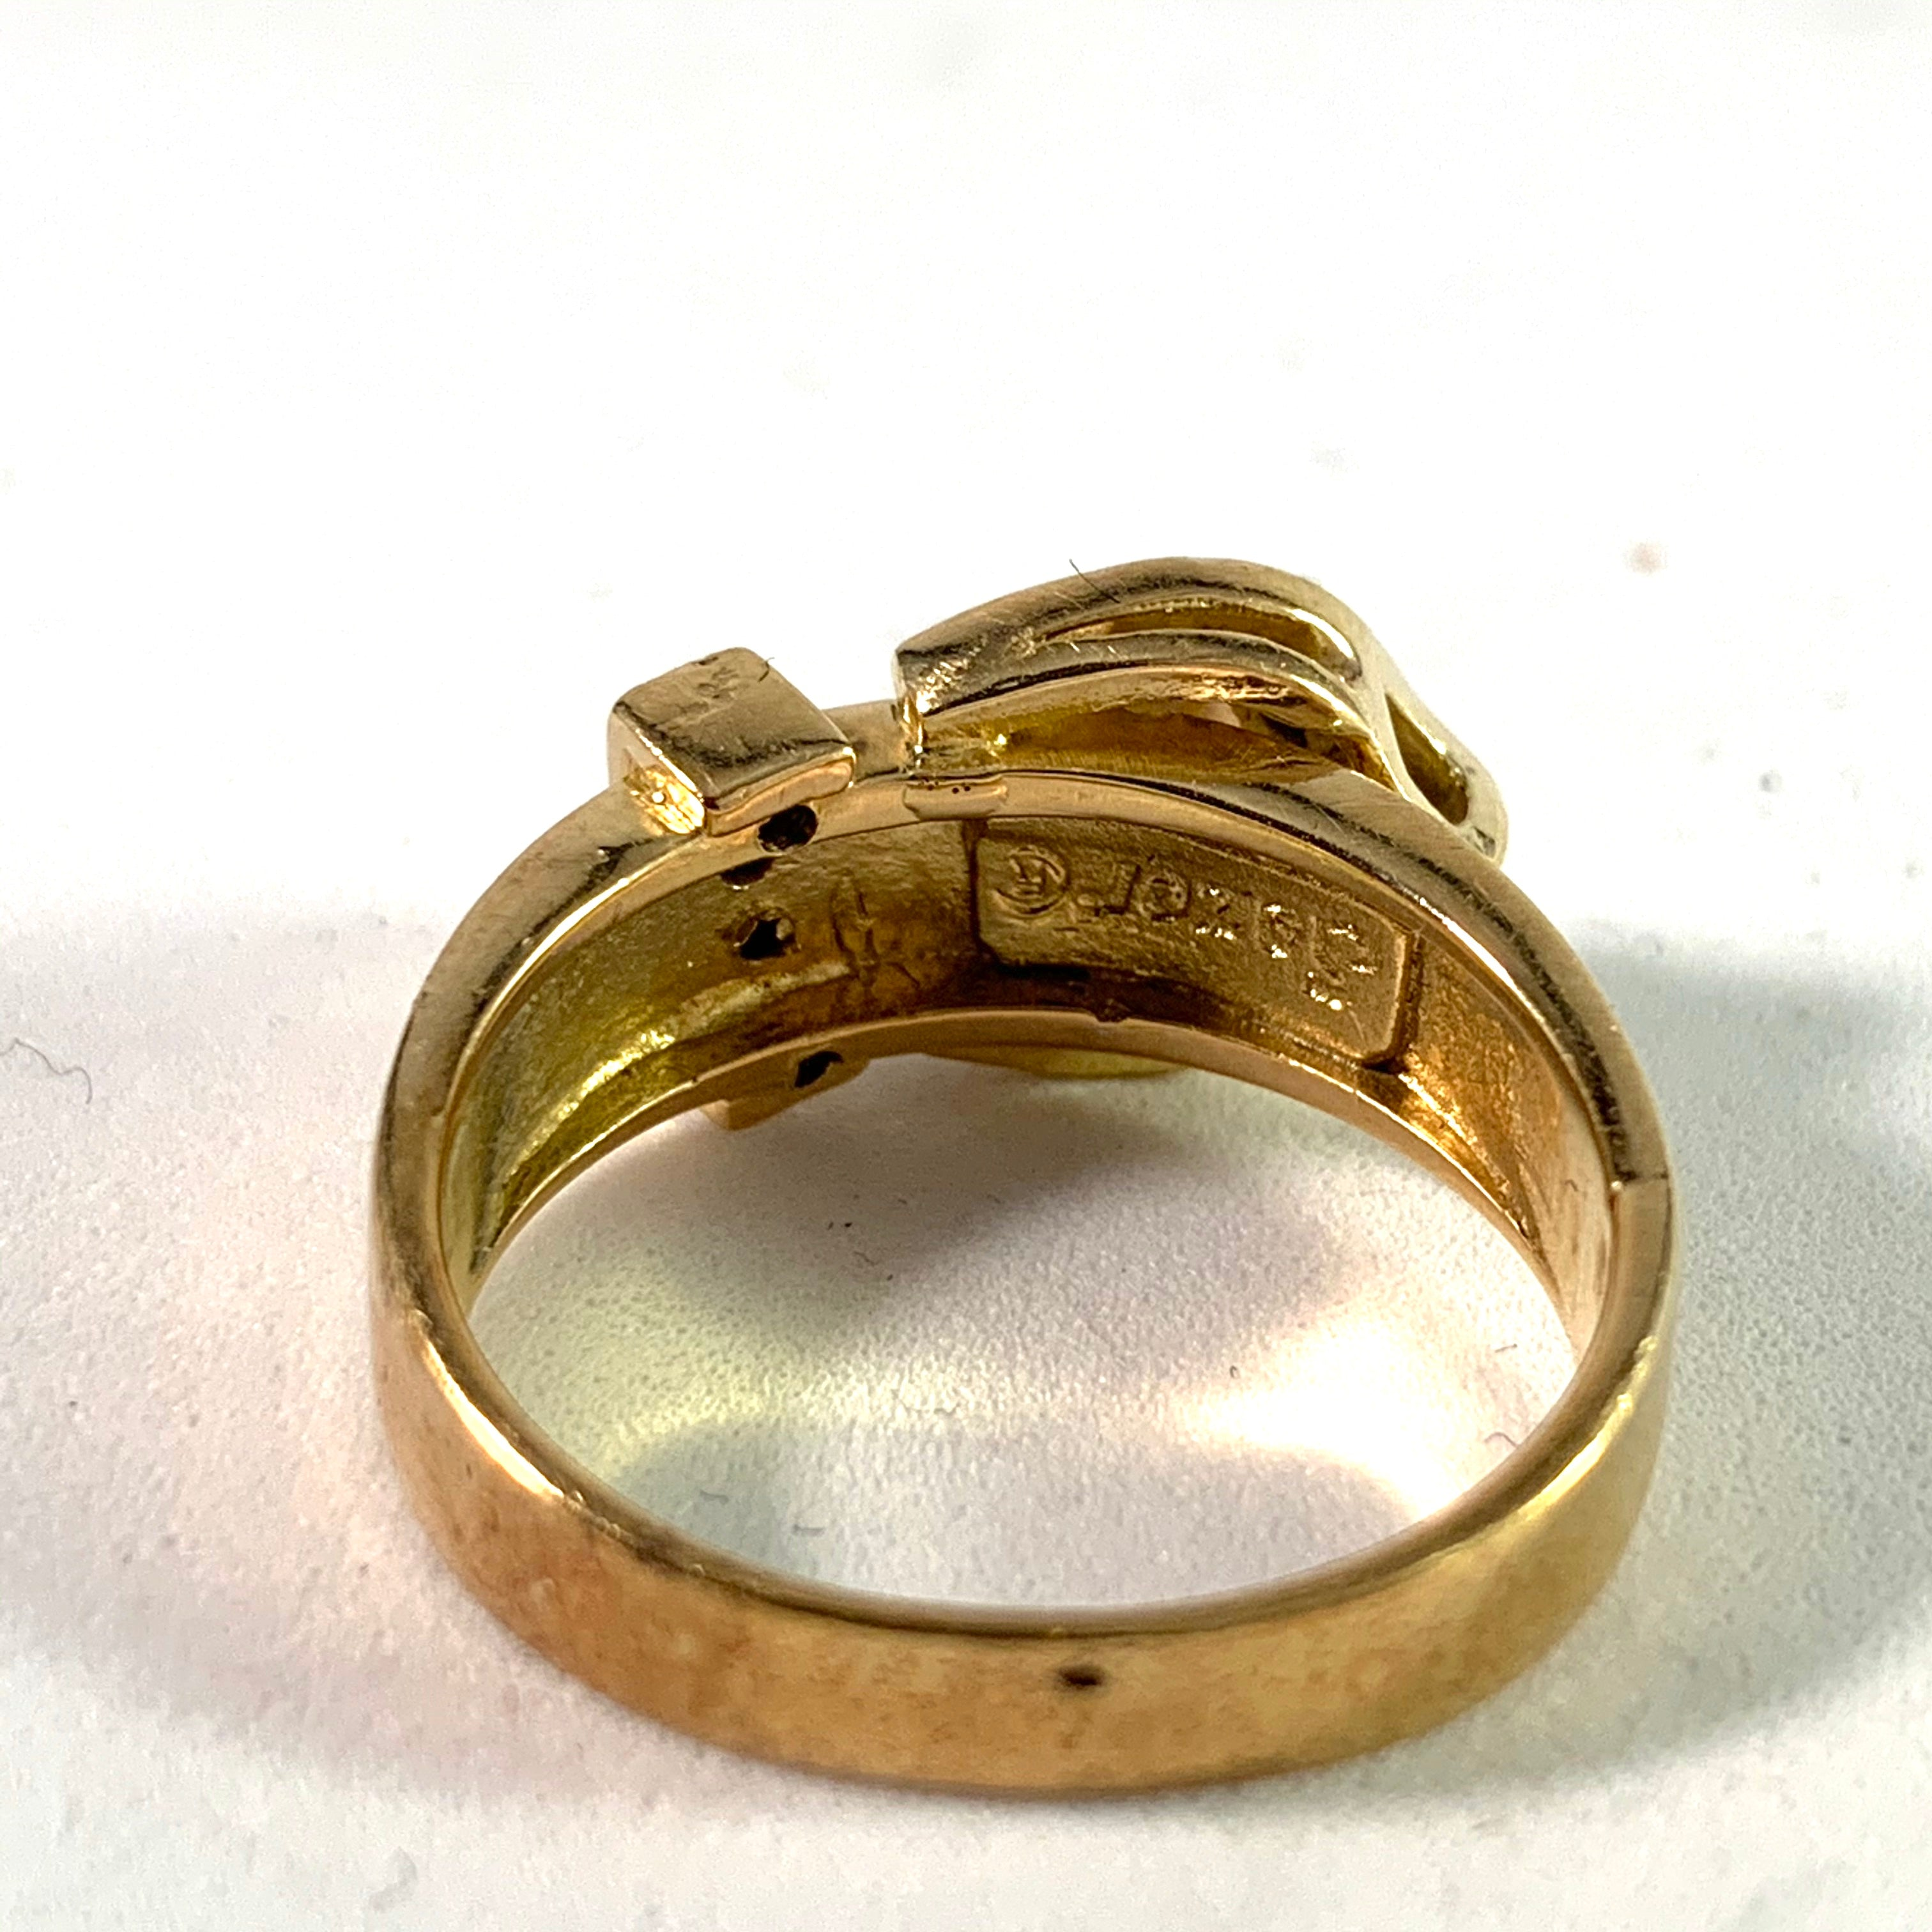 Vintage 14k Gold 0.20ctw Diamond Belt Buckle Ring.